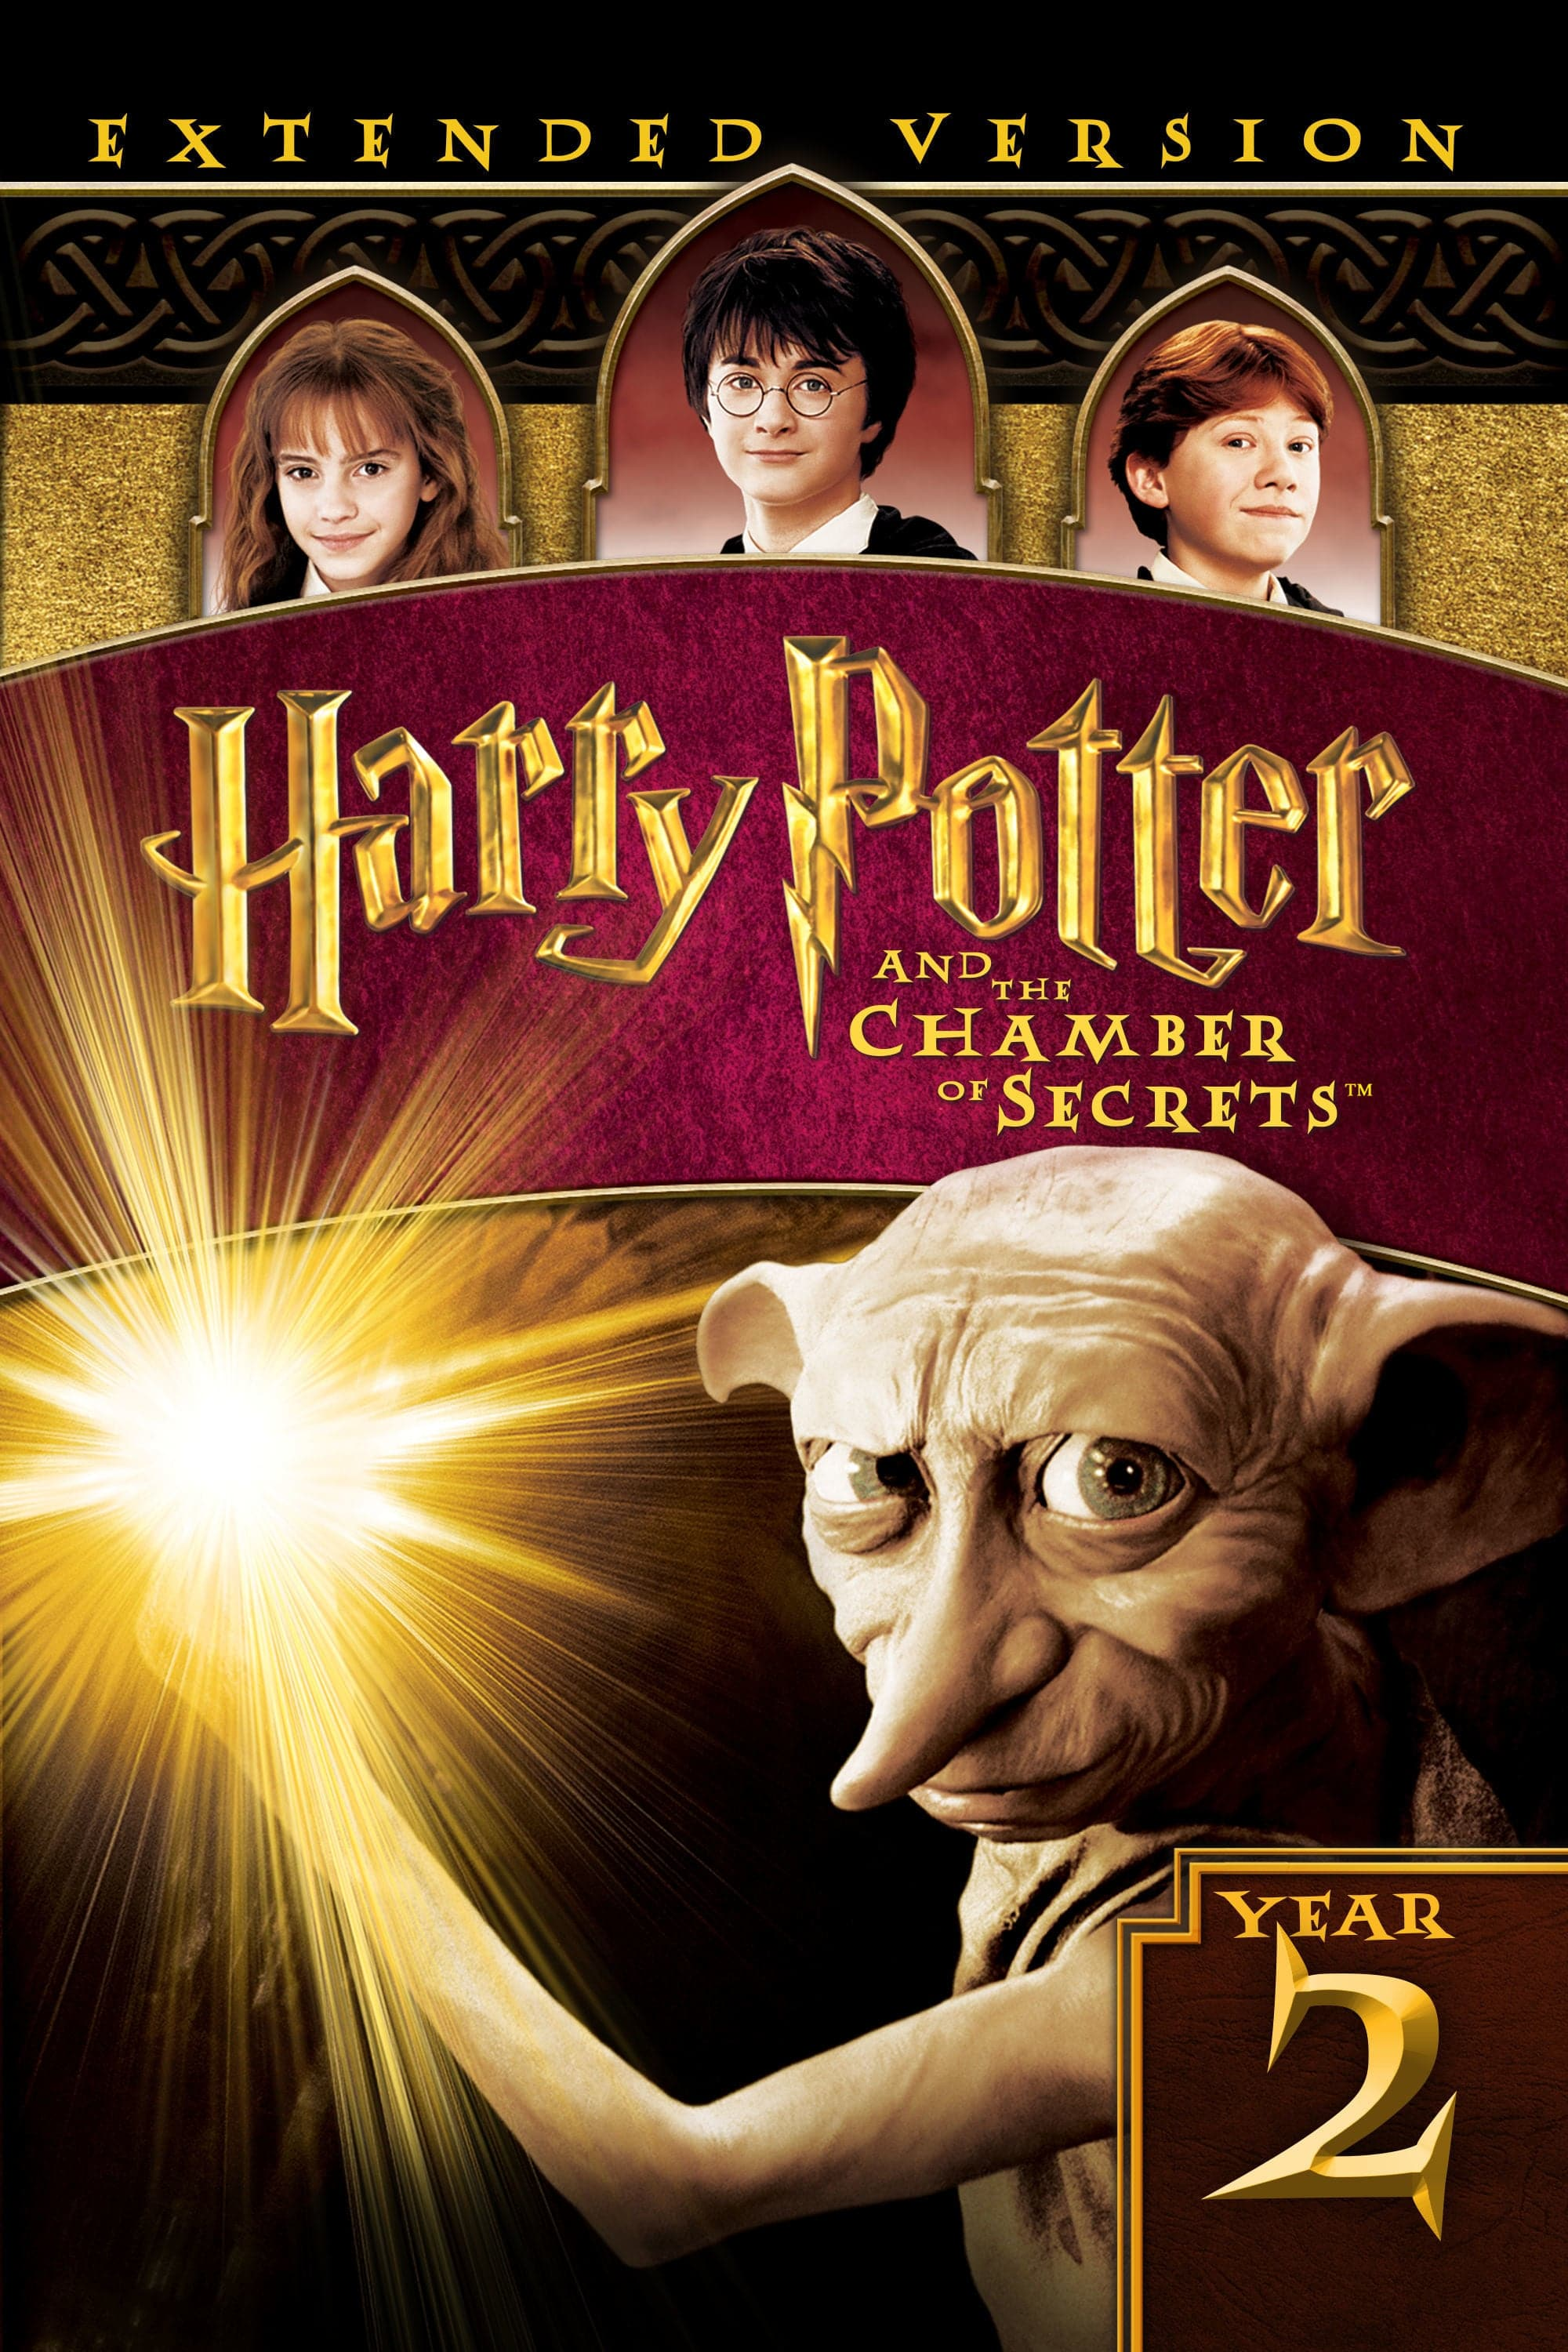 harry potter poster the chamber of secrets 2002 high quality HD printable wallpapers dobby